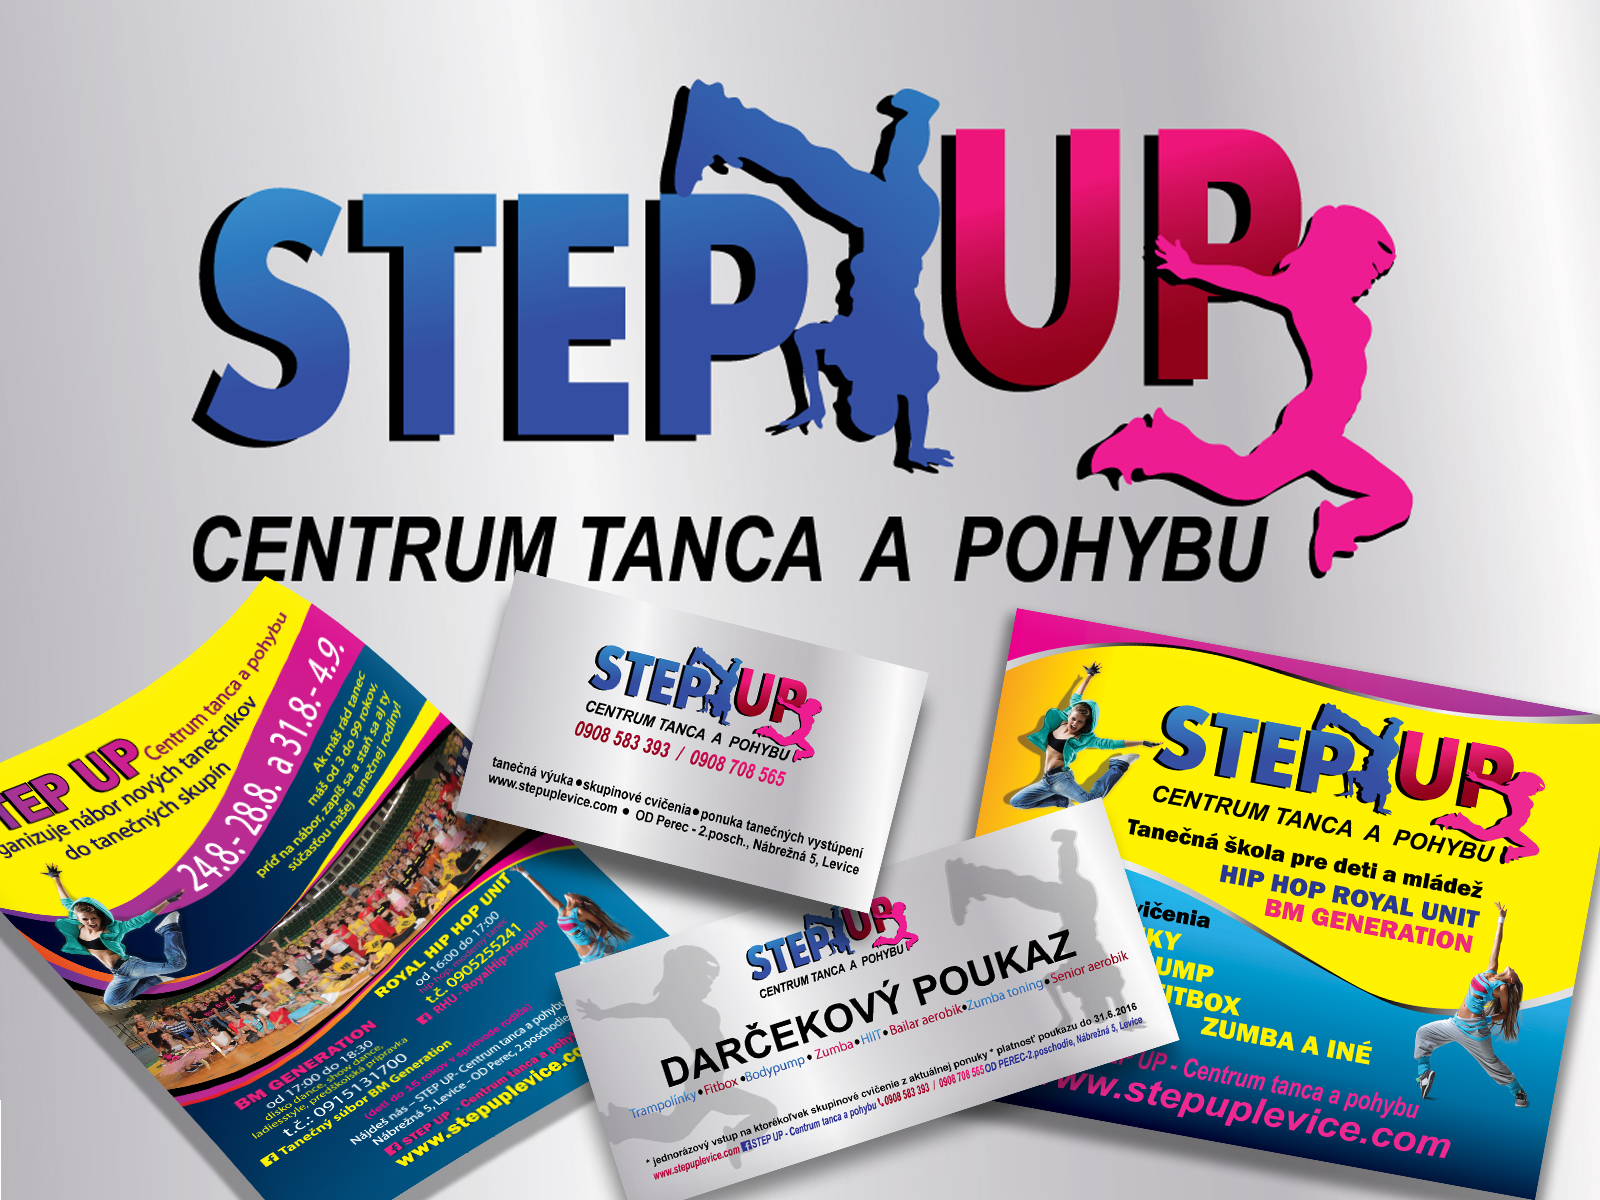 STEP UP centrum tanca a pohybu